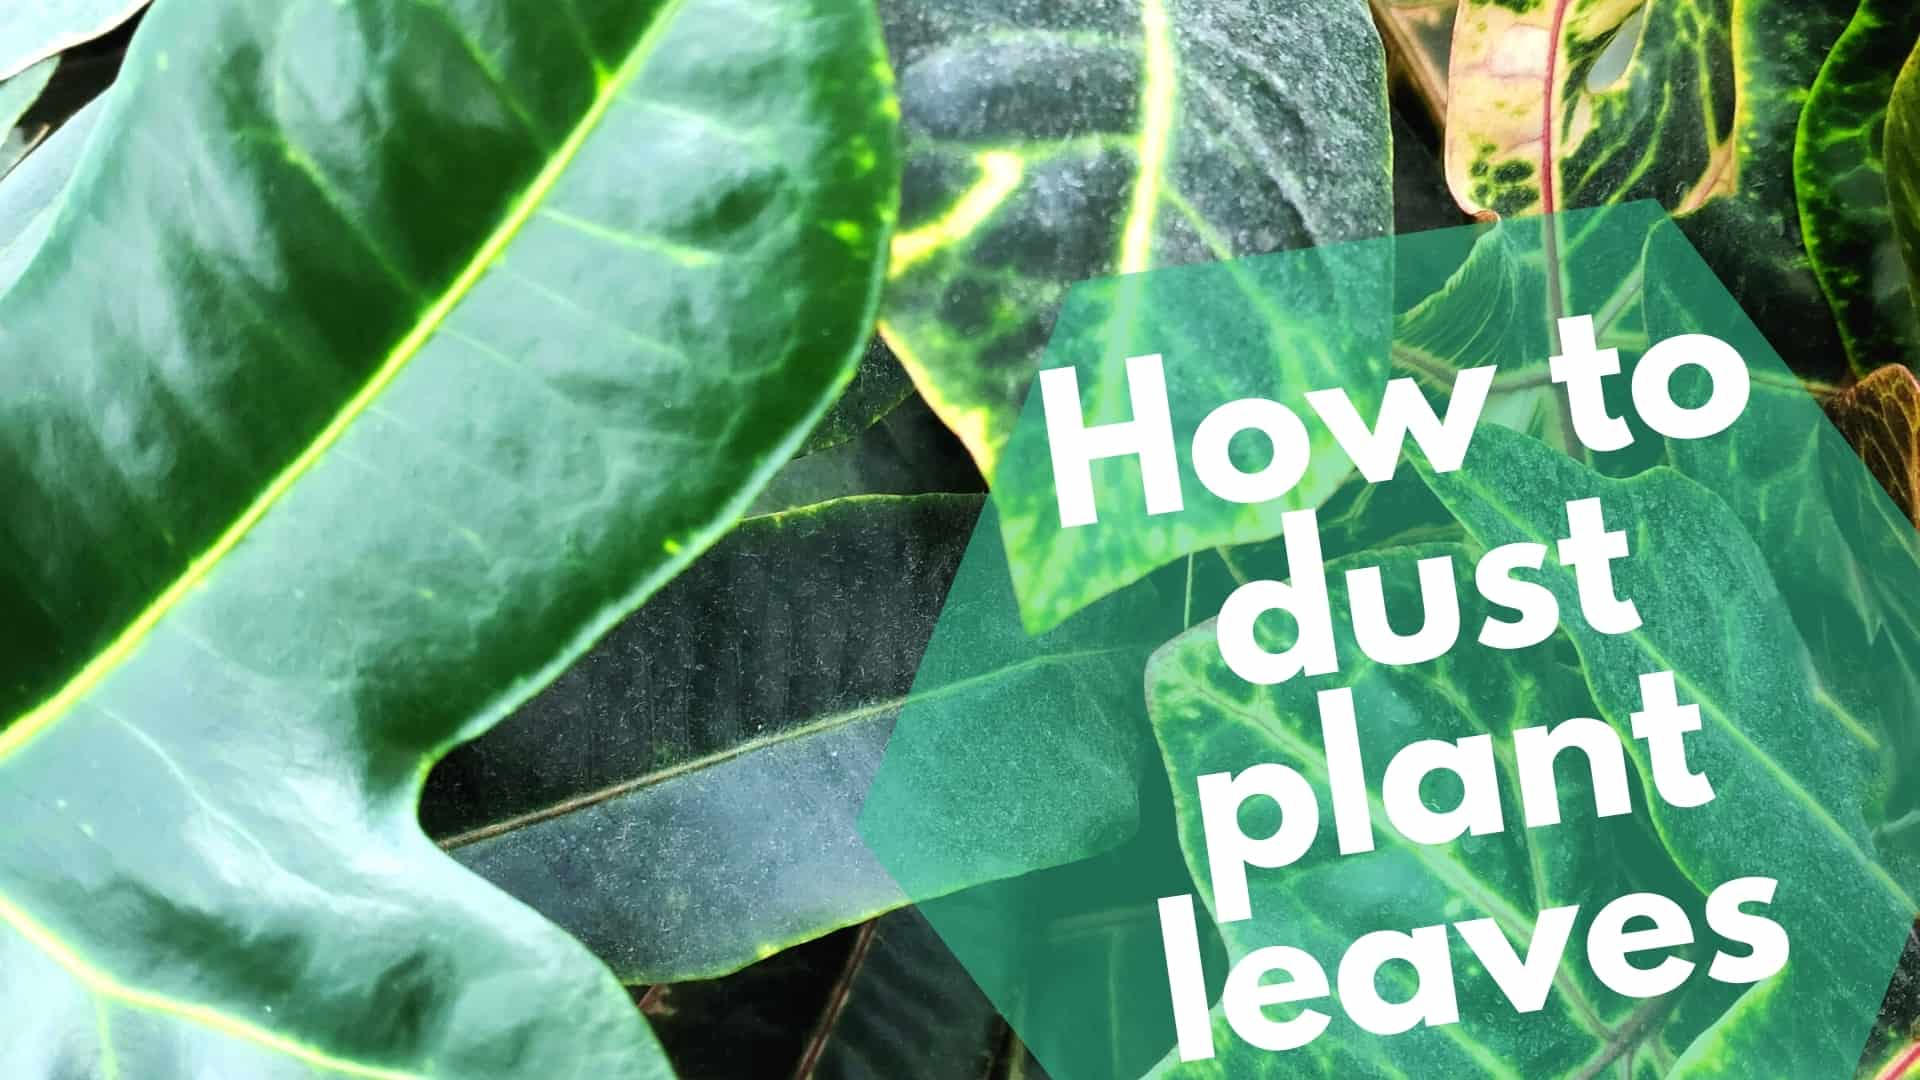 How to dust plant leaves